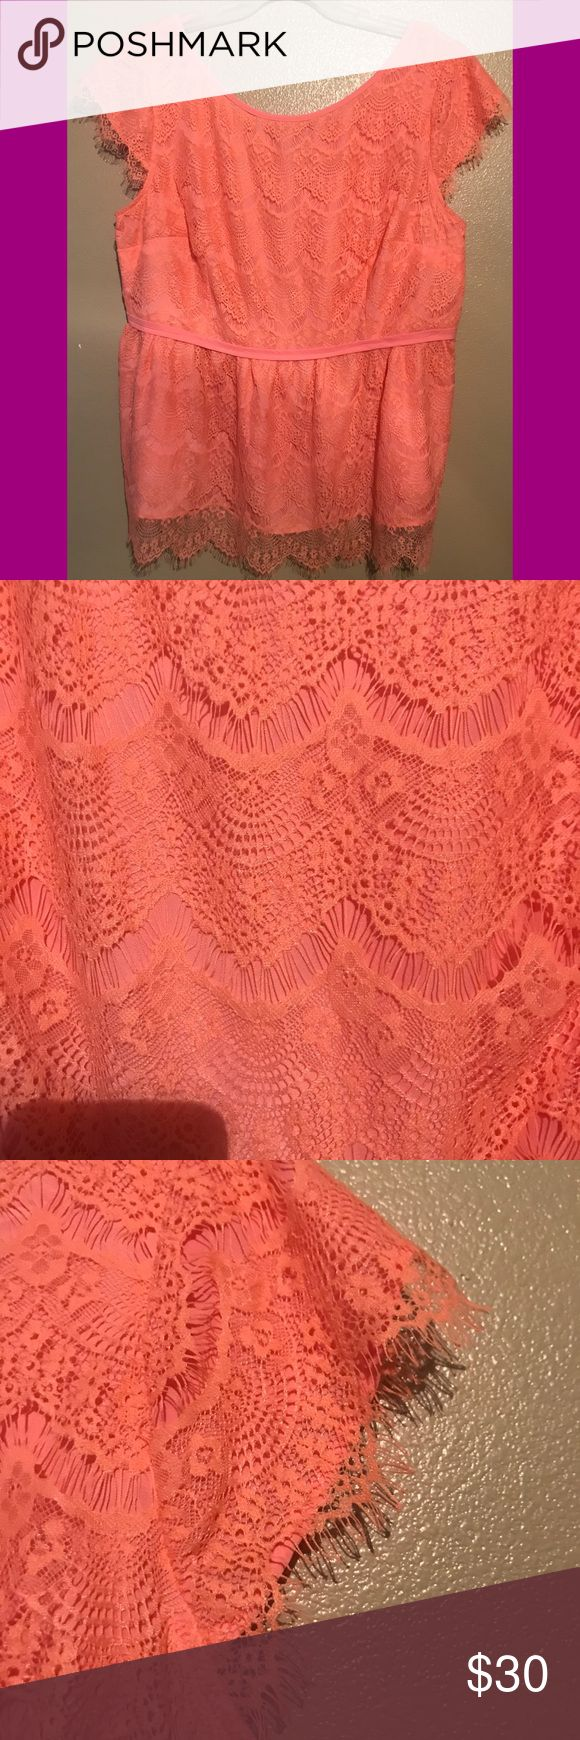 Peach Eyelash Lace Peplum Top with Cap Sleeves Peach Eyelash Lace Peplum Top with Cap Sleeves...never worn, brand new from EShakti 3X 26W eshakti Tops